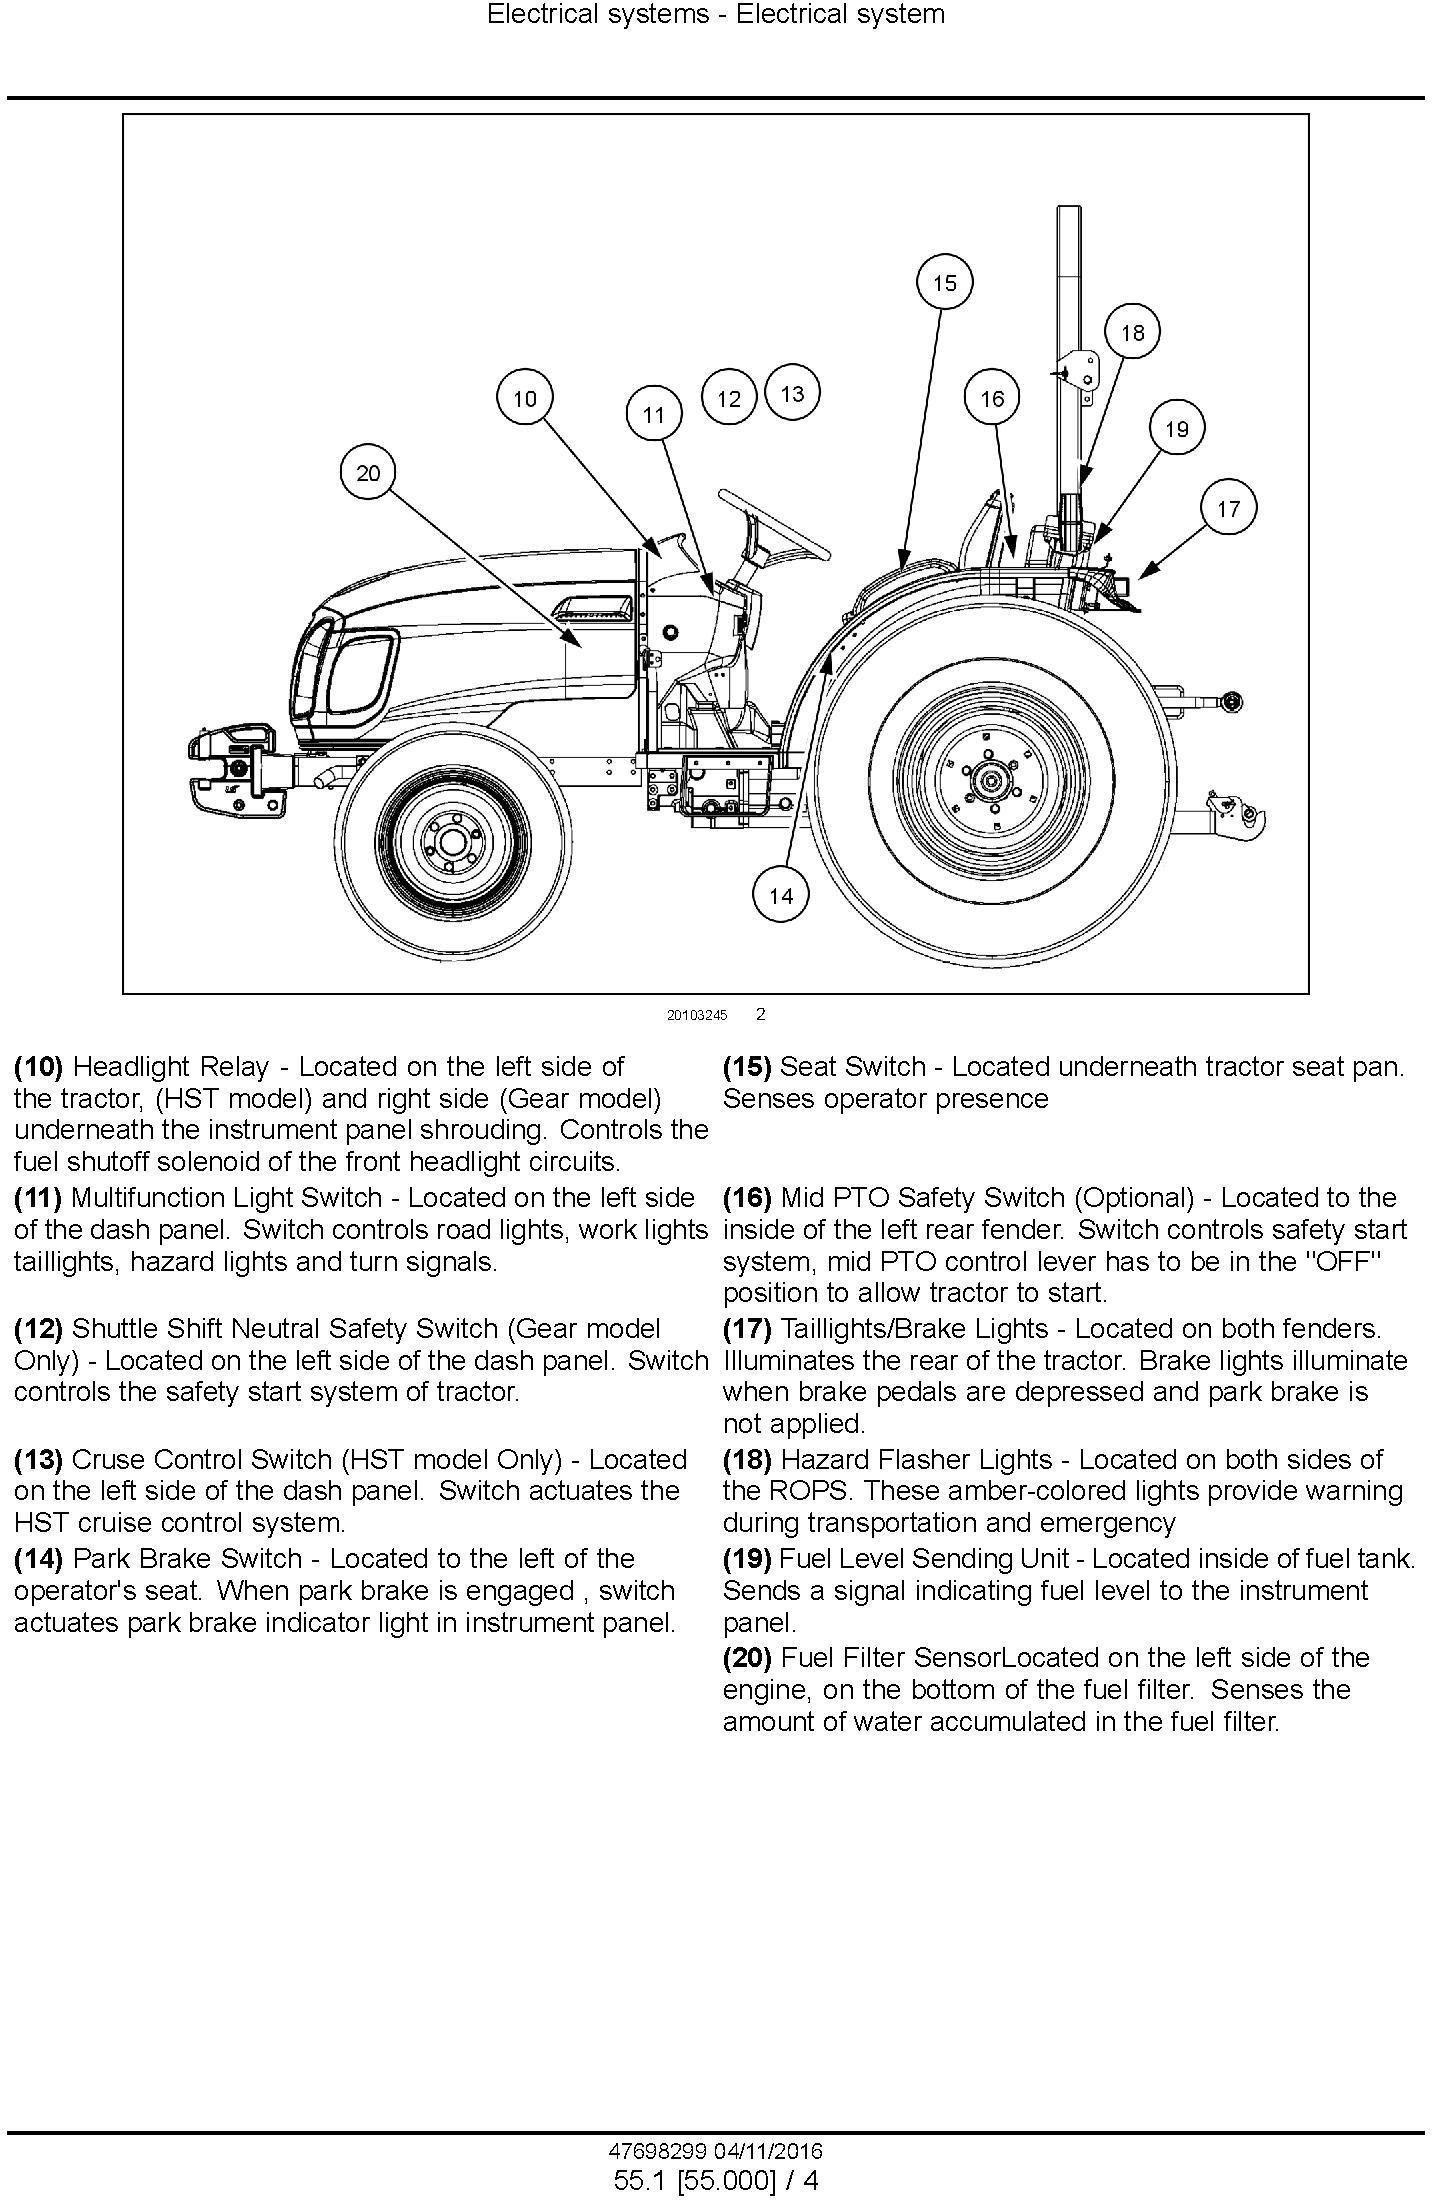 New Holland Boomer 40, Boomer 50 Tier 3 Compact tractor Complete service manual - 2